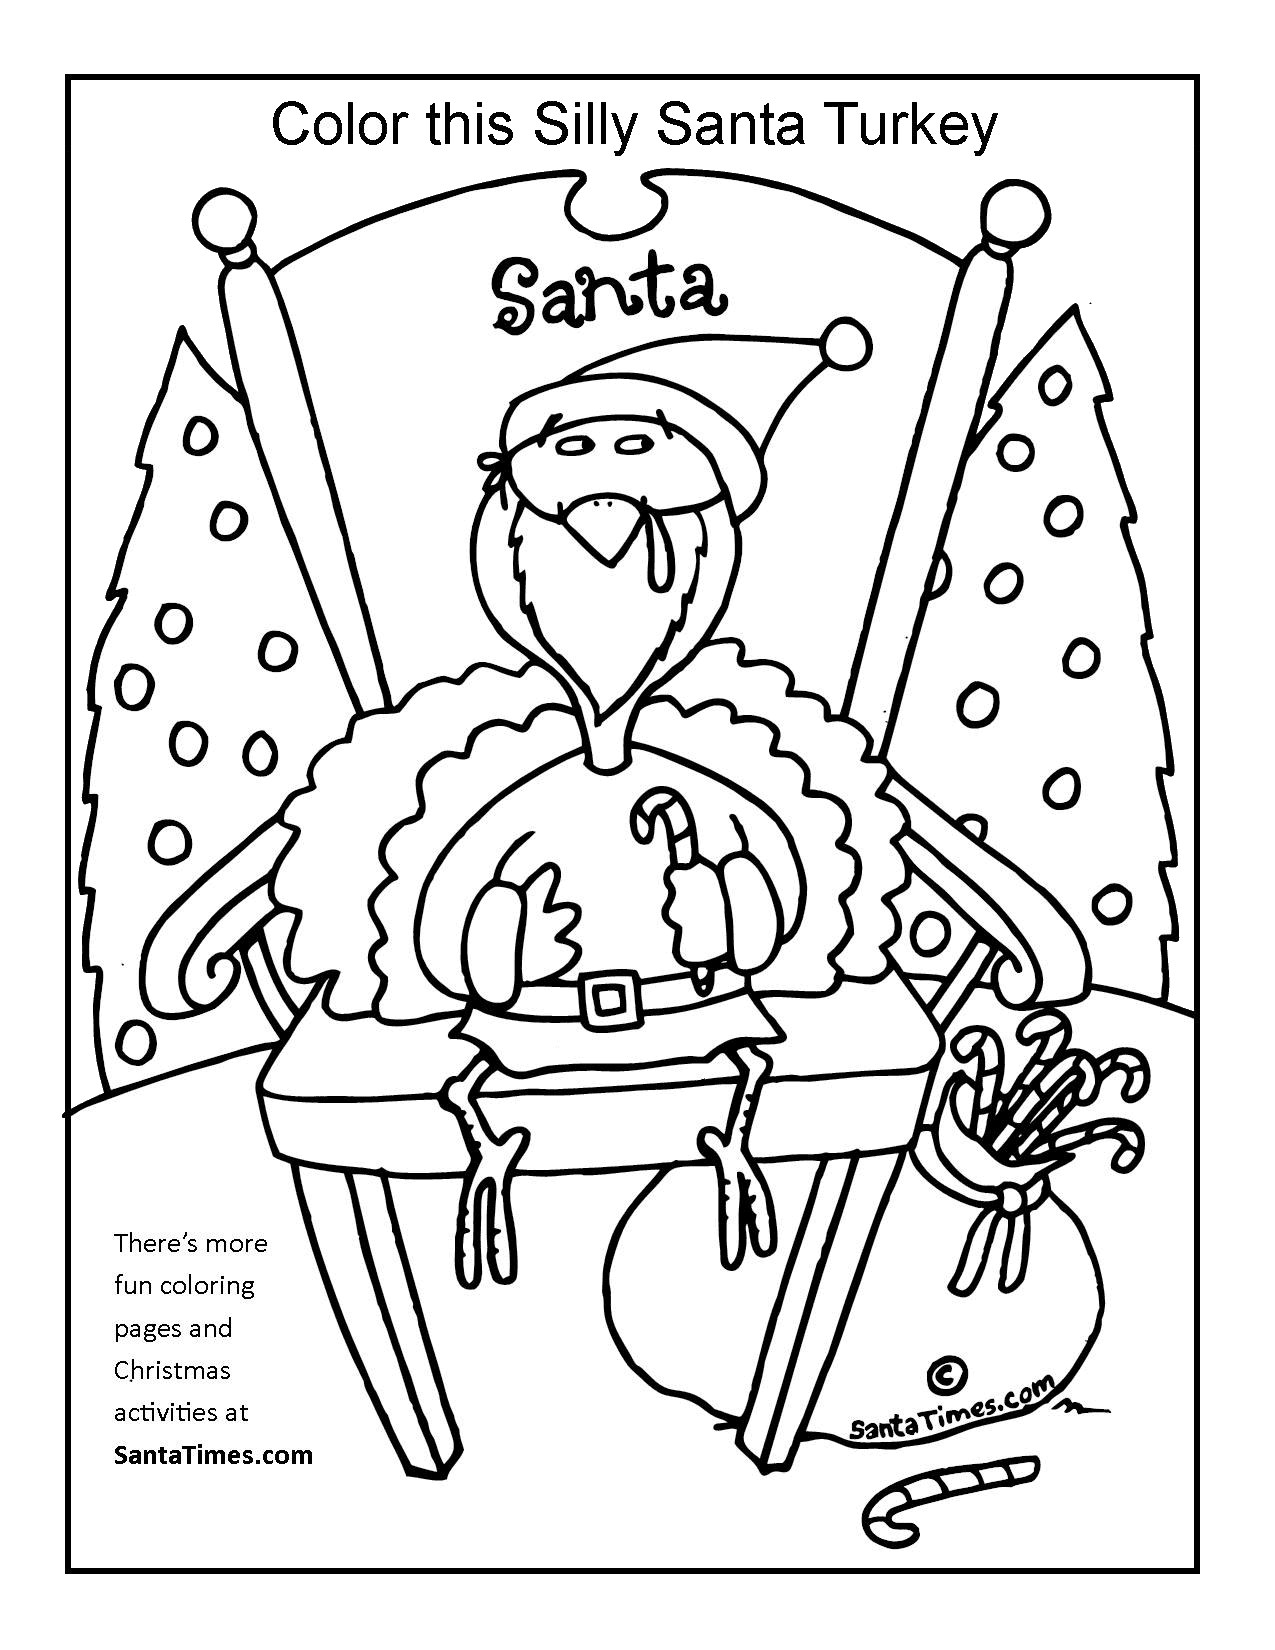 Silly Santa Turkey Christmas Coloring Page